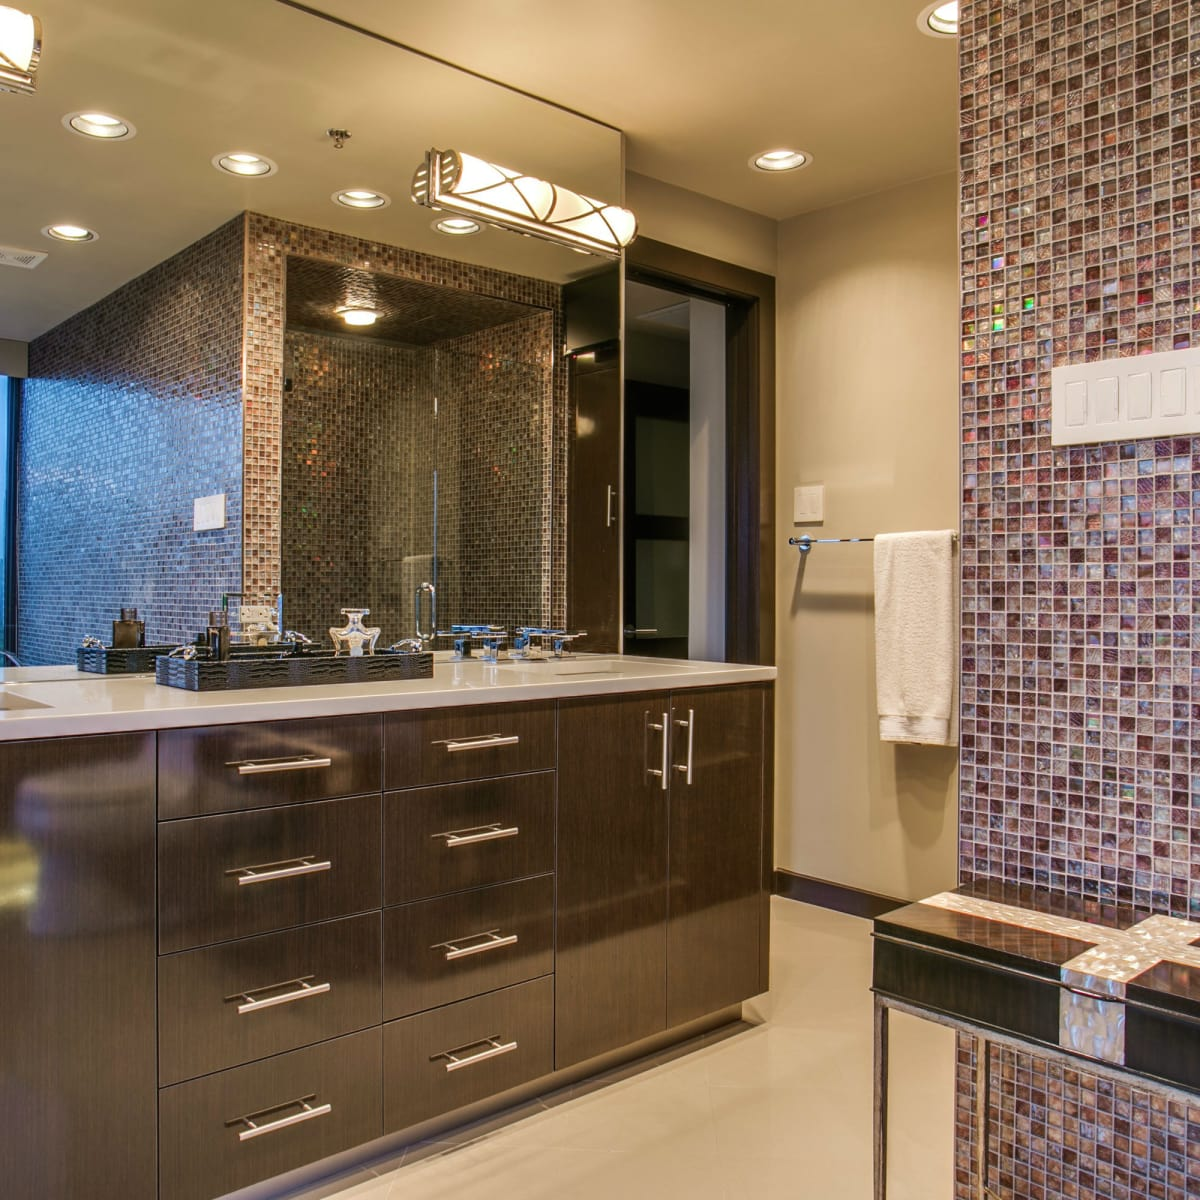 Bathroom at 3831 Turtle Creek Blvd. in Dallas